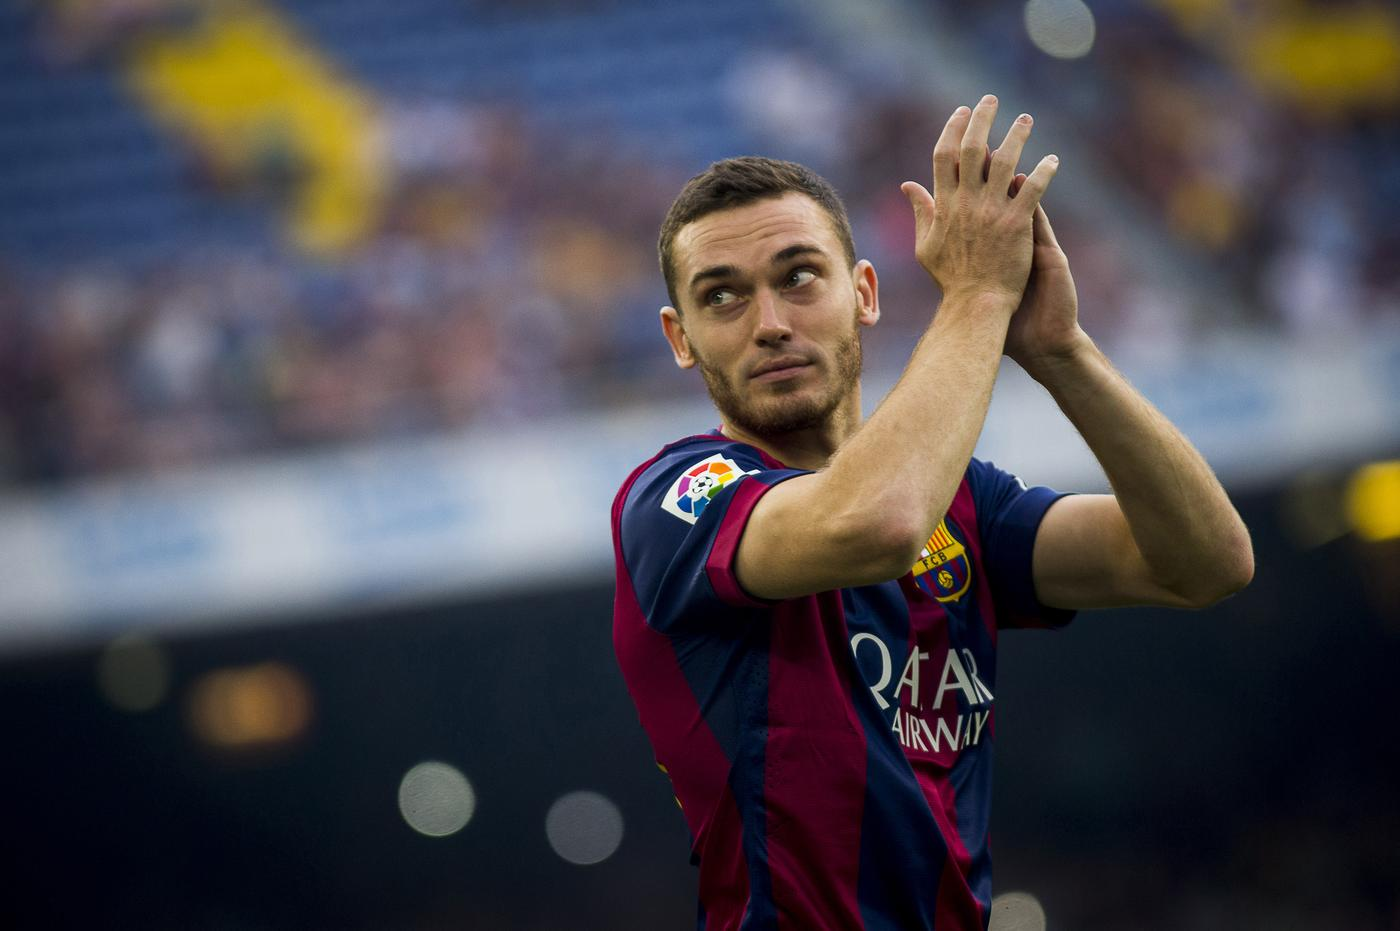 Real Madrid and Barcelona wages show ex-Arsenal man Thomas Vermaelen earns more than Isco